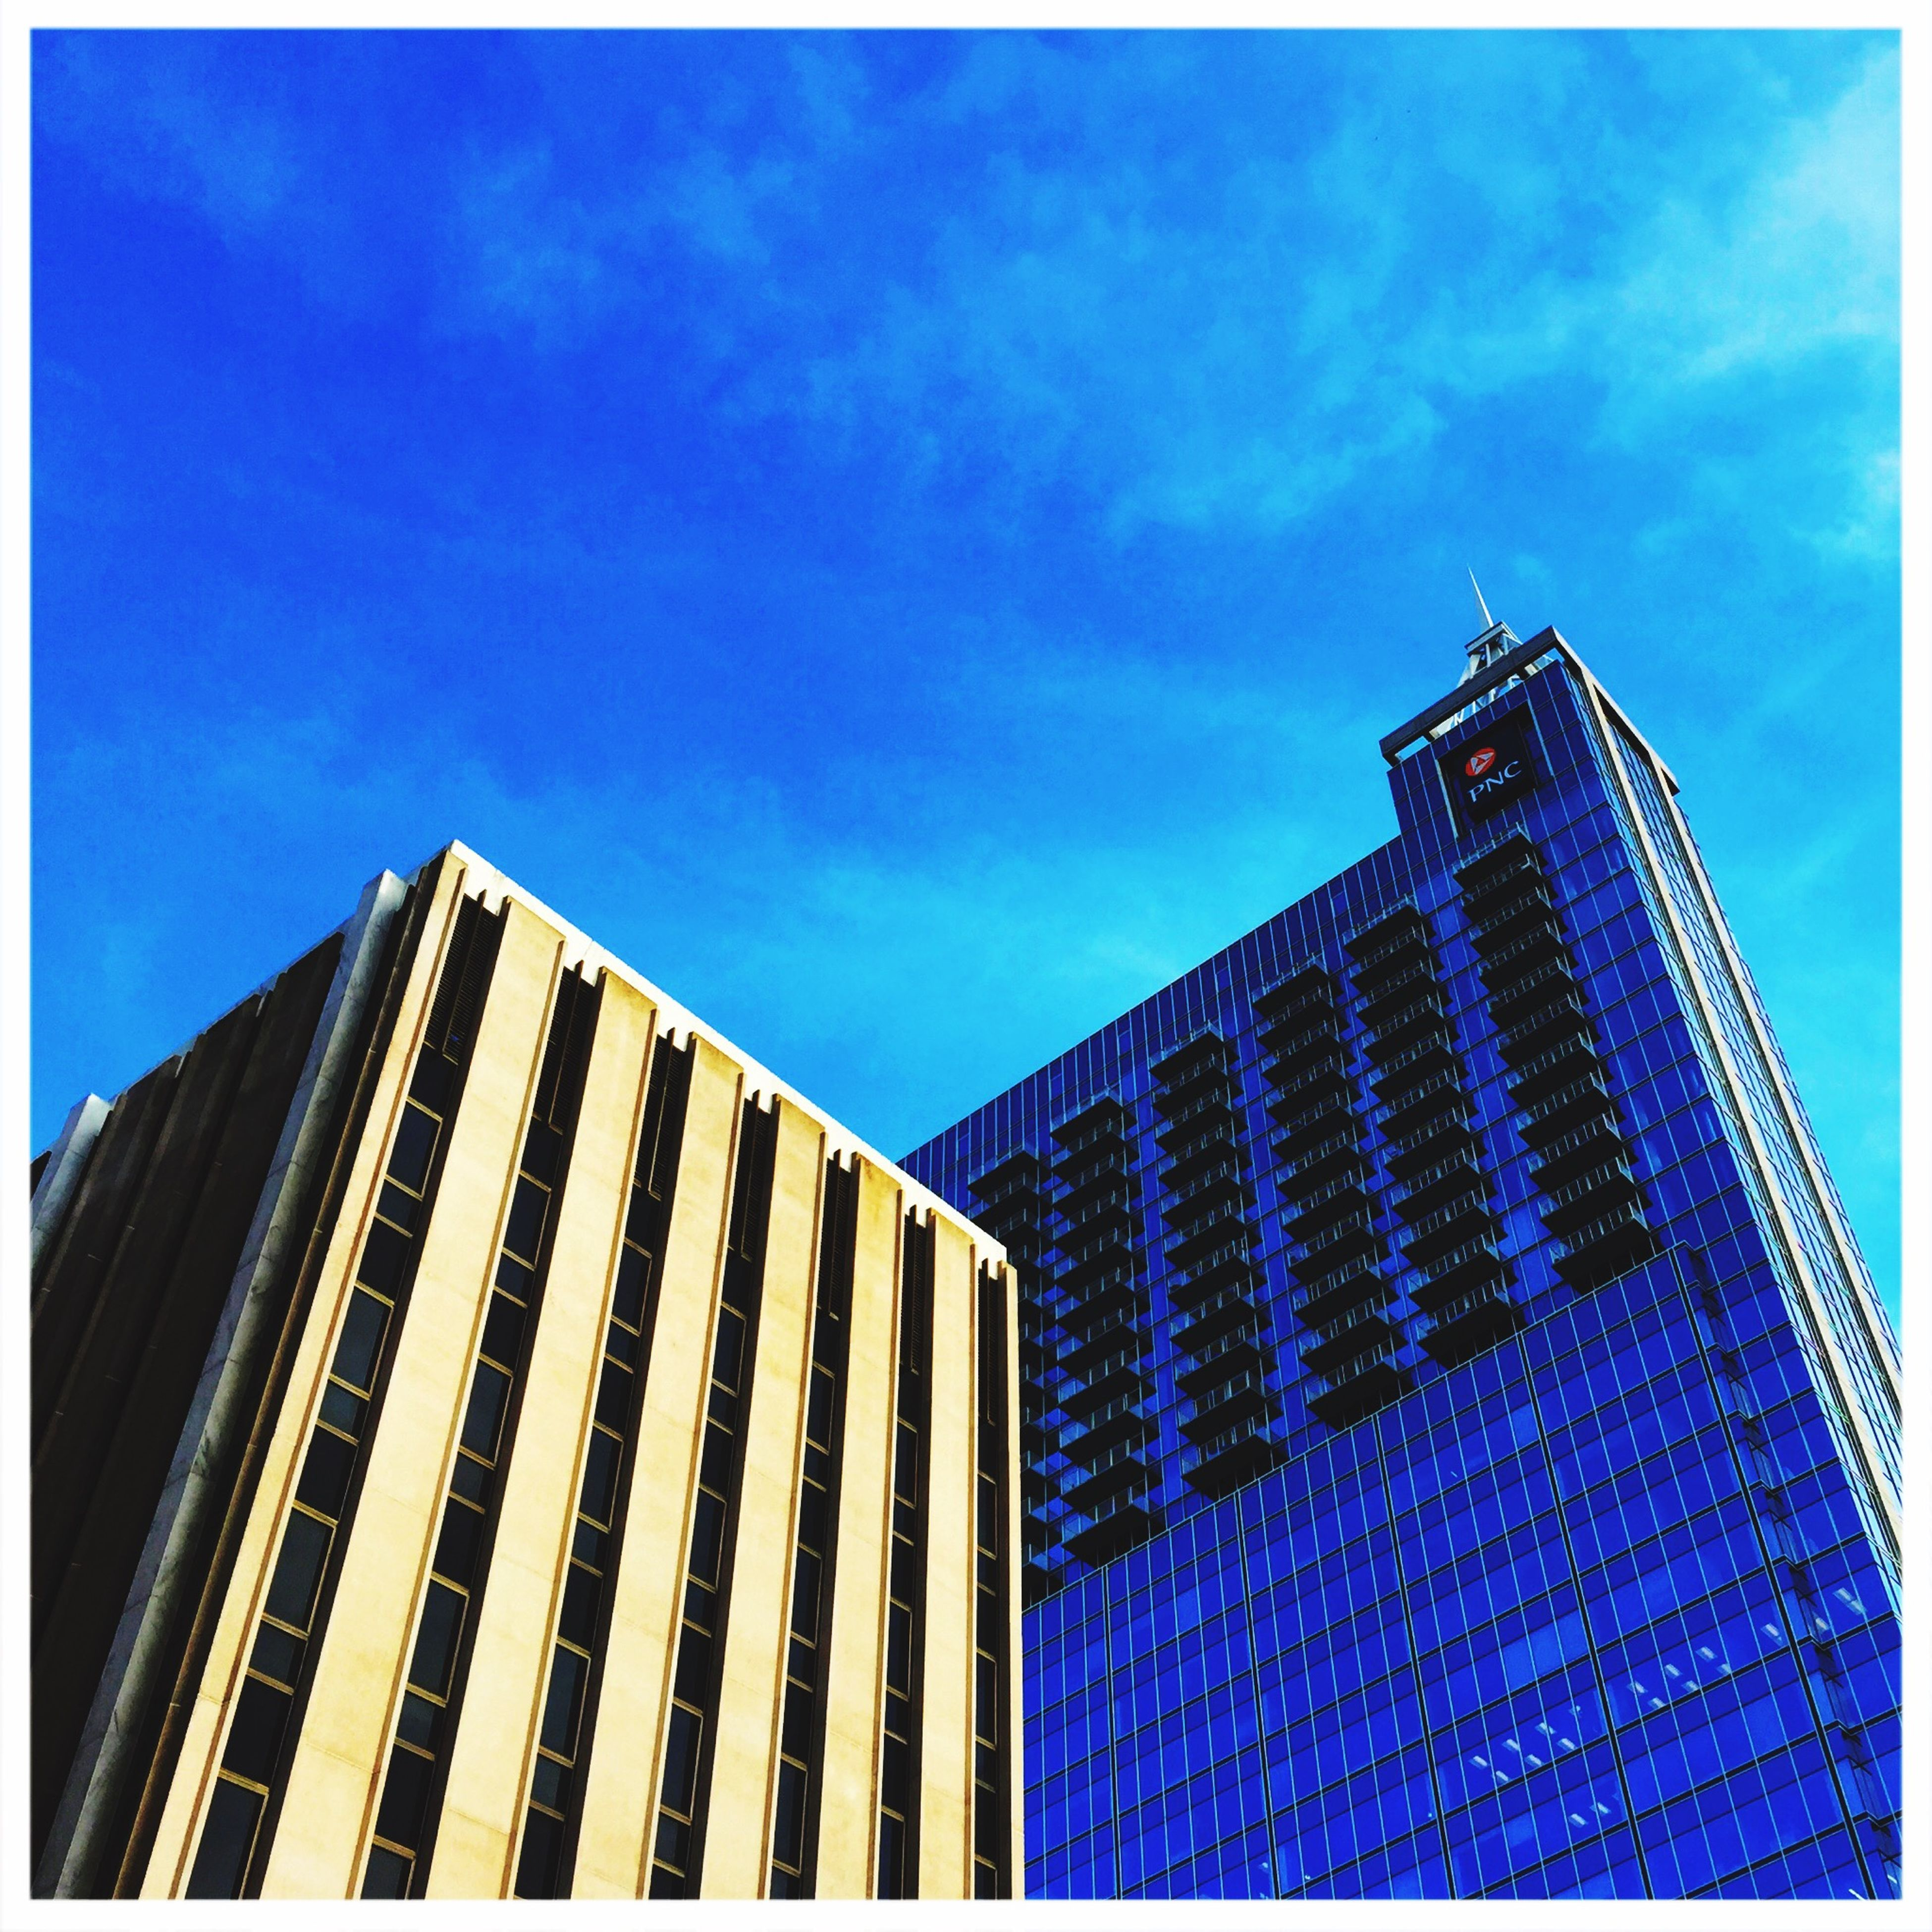 architecture, building exterior, built structure, low angle view, modern, sky, skyscraper, office building, city, tower, blue, transfer print, tall - high, auto post production filter, cloud - sky, glass - material, building, cloud, reflection, day